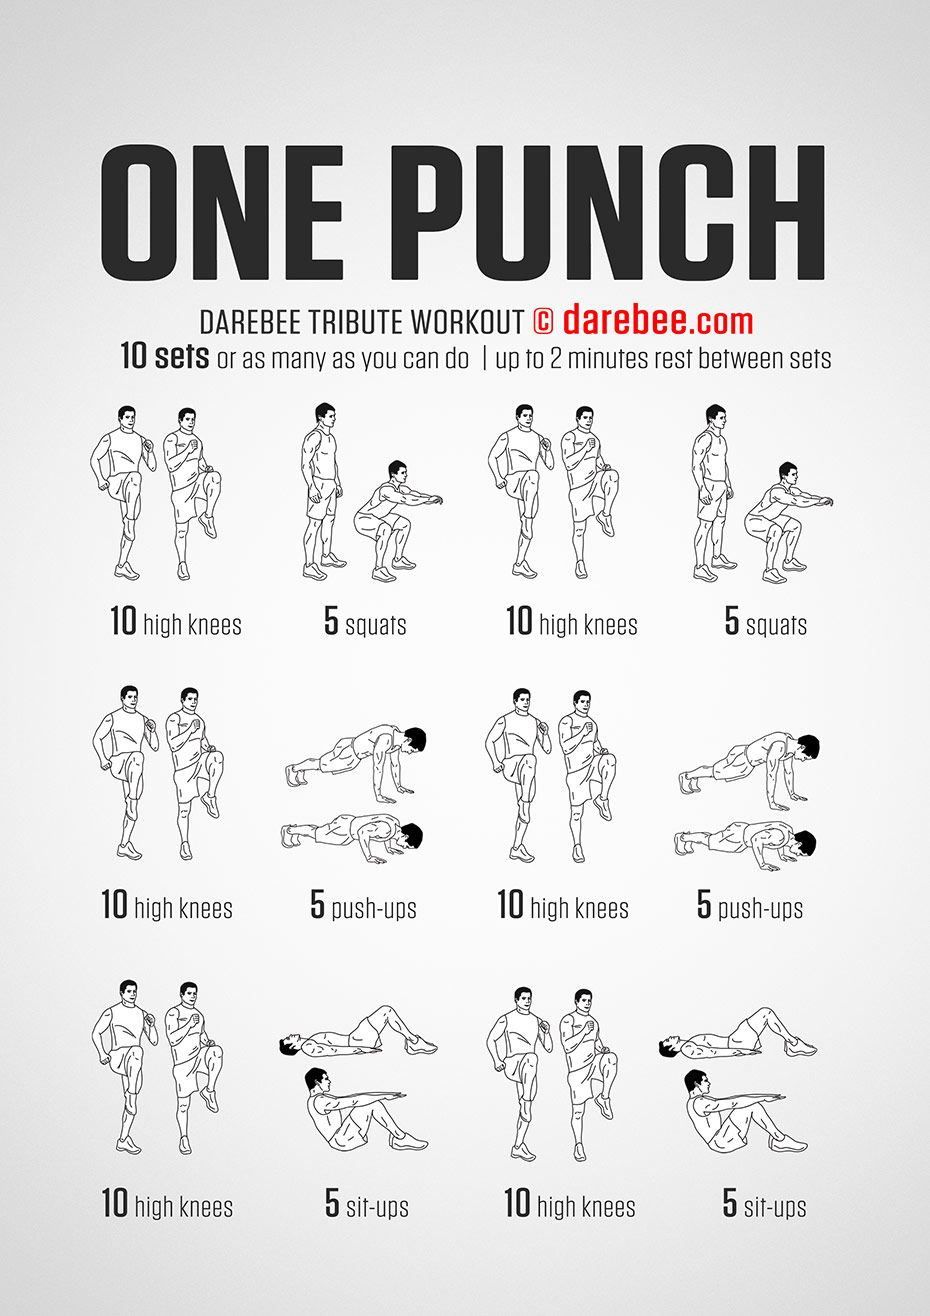 Darebee One Punch workout - The One Punch workout is an ...